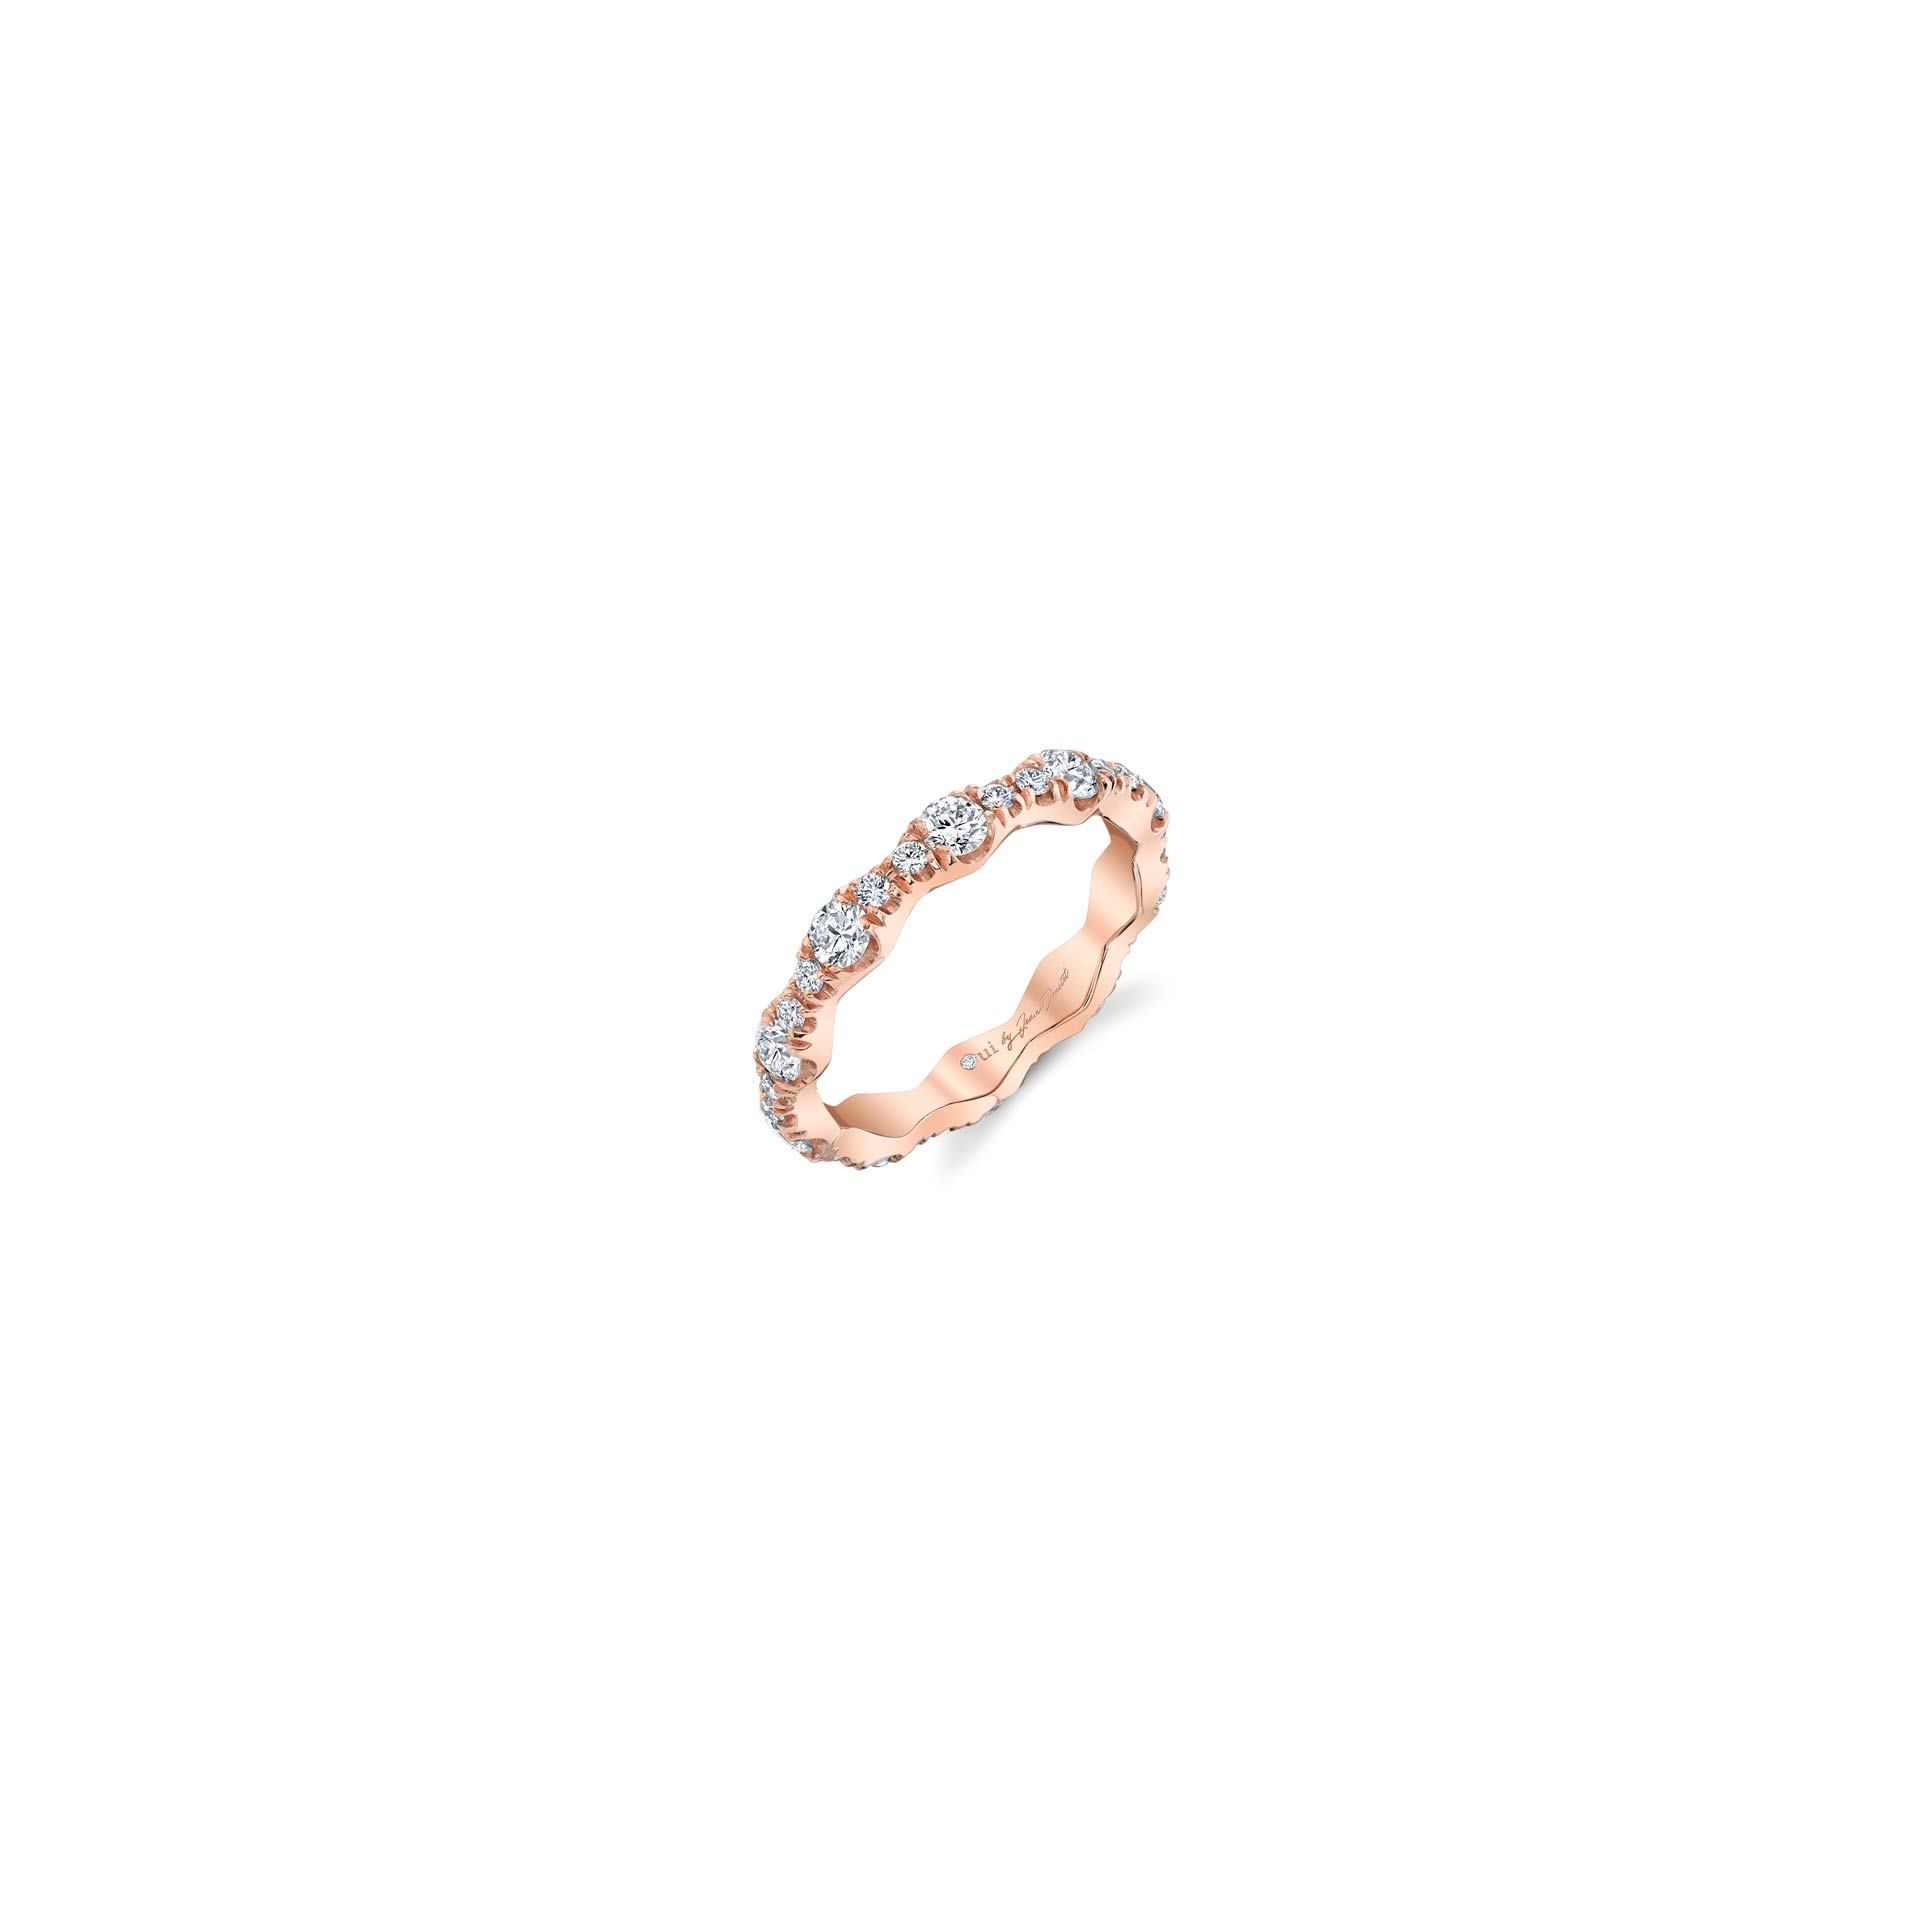 Yvonne Women's Wedding Band with a diamond pavé wave in 18k Rose Gold Standing View by Oui by Jean Dousset